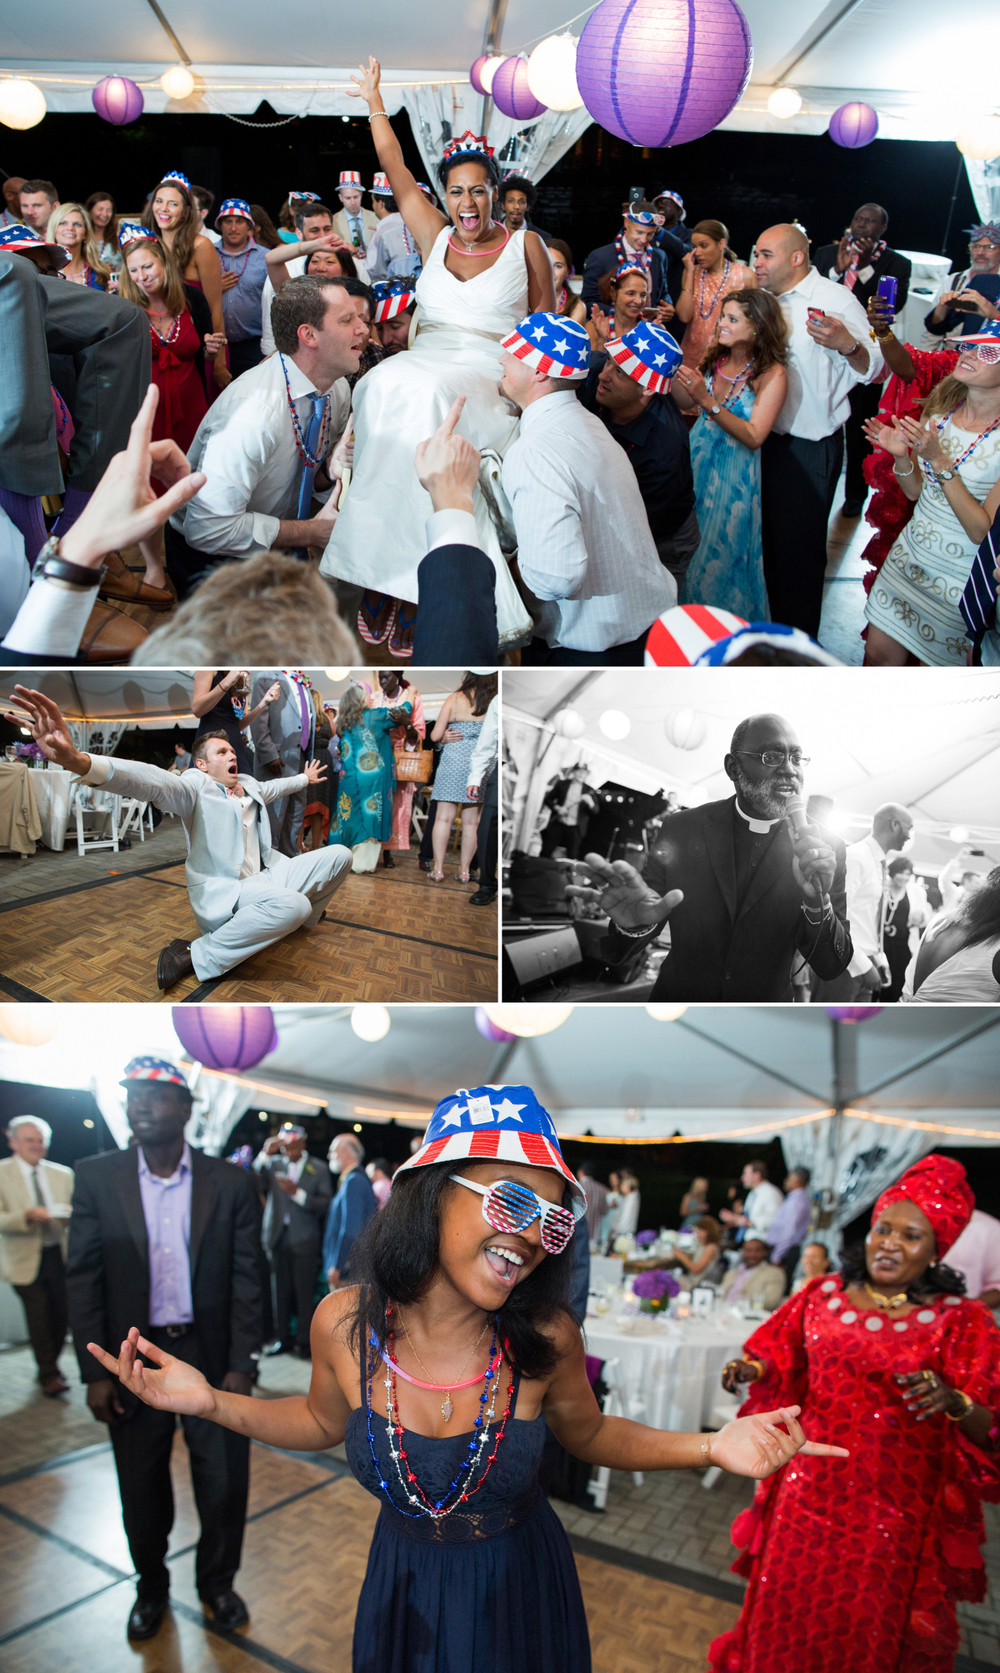 LordJefferyInnWedding_HolidayJuly4thWedding_AmherstMA_MichelleGirardPhotography40.jpg